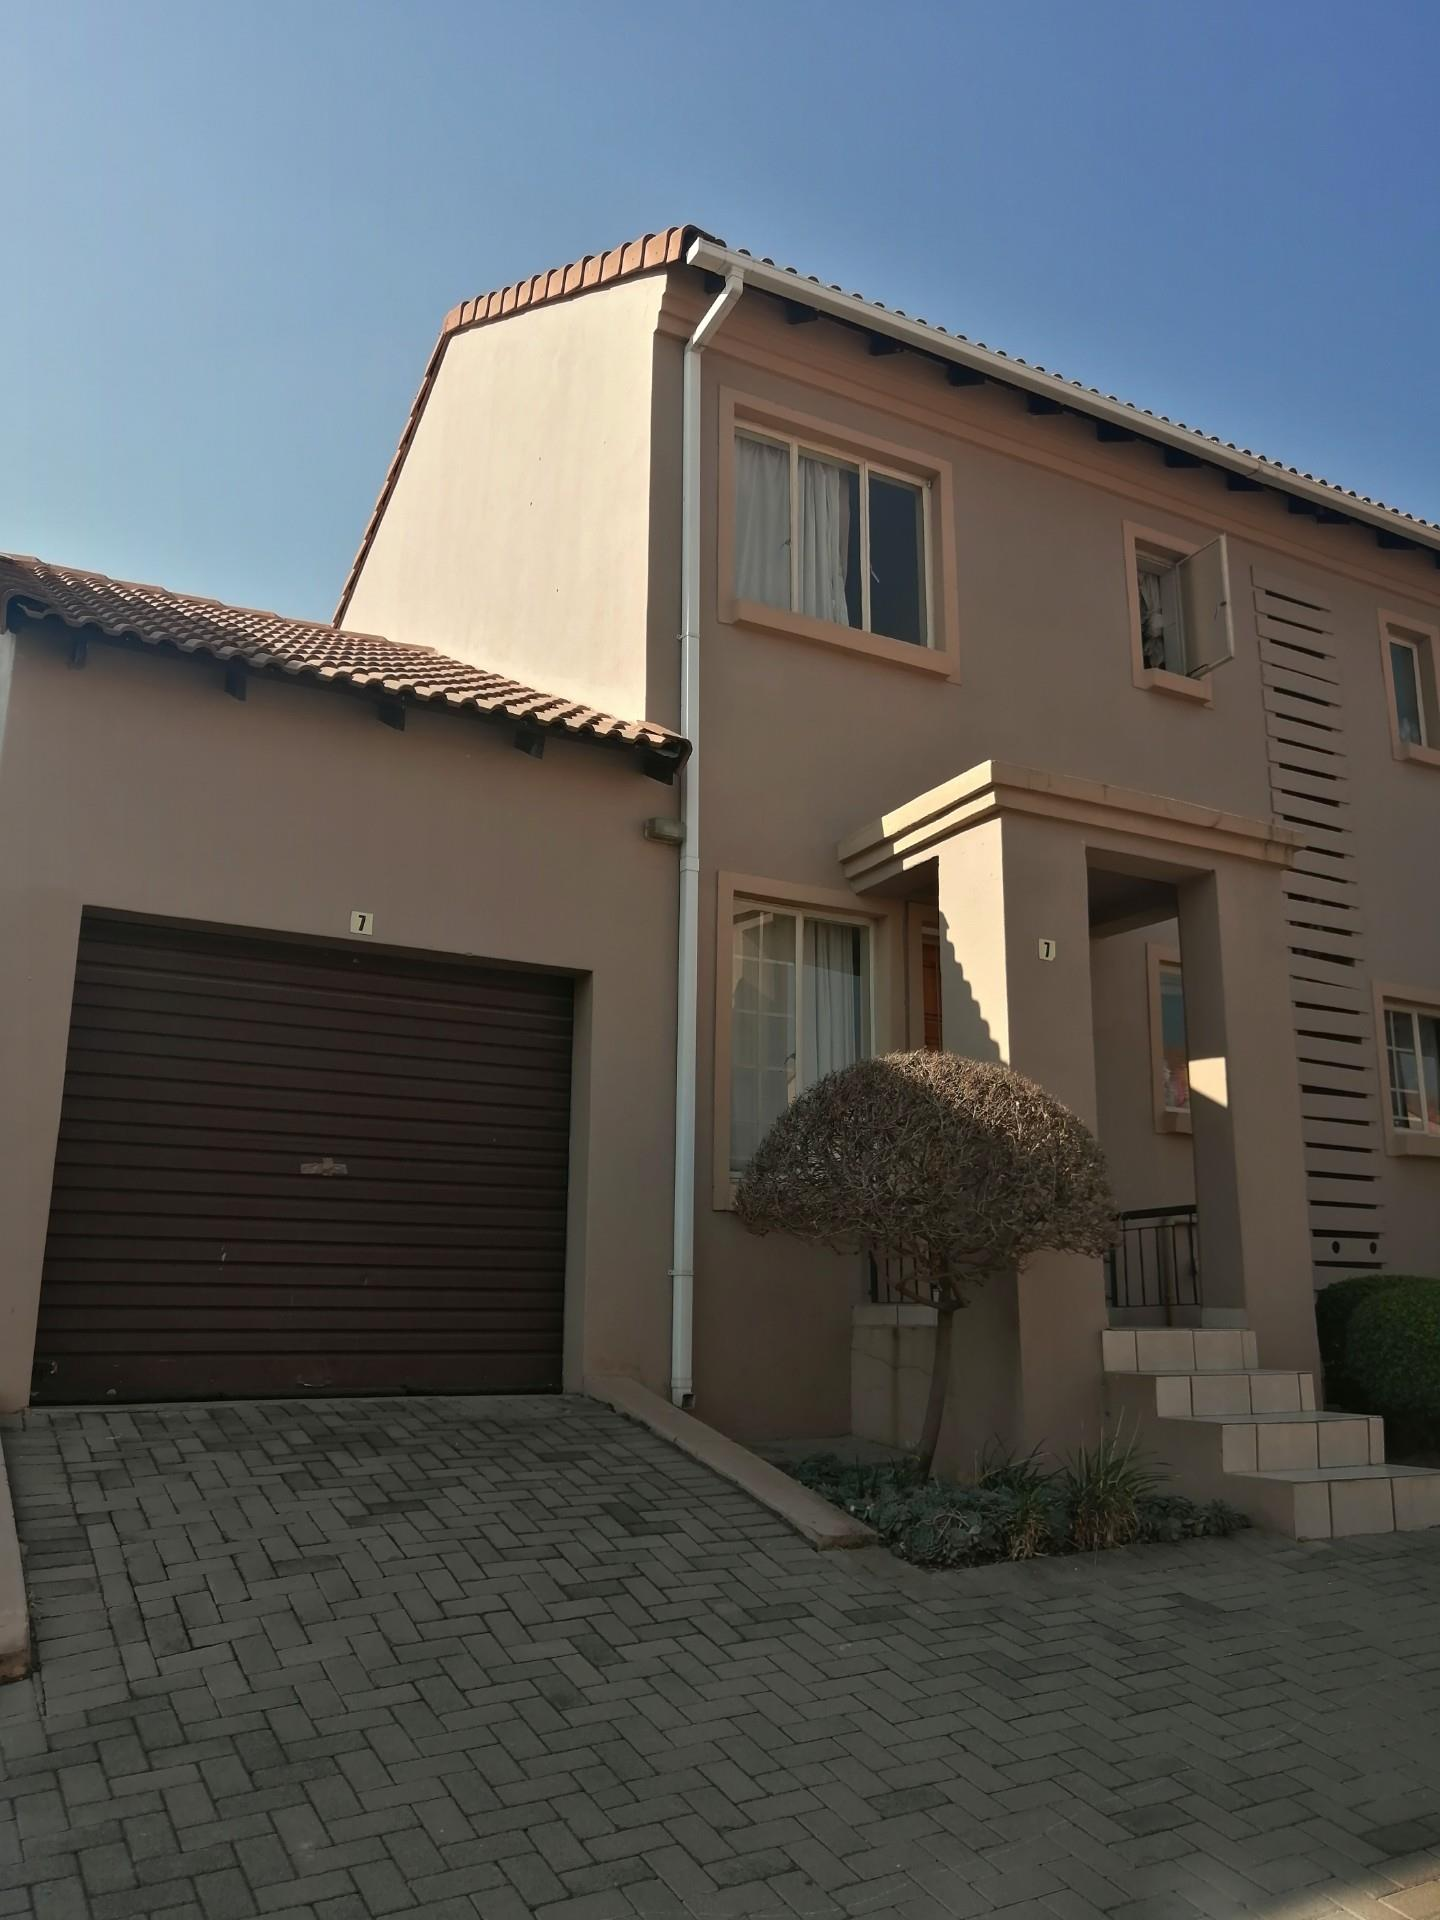 Terrific Property For Sale In Midrand Re Max Of Southern Africa Home Interior And Landscaping Oversignezvosmurscom